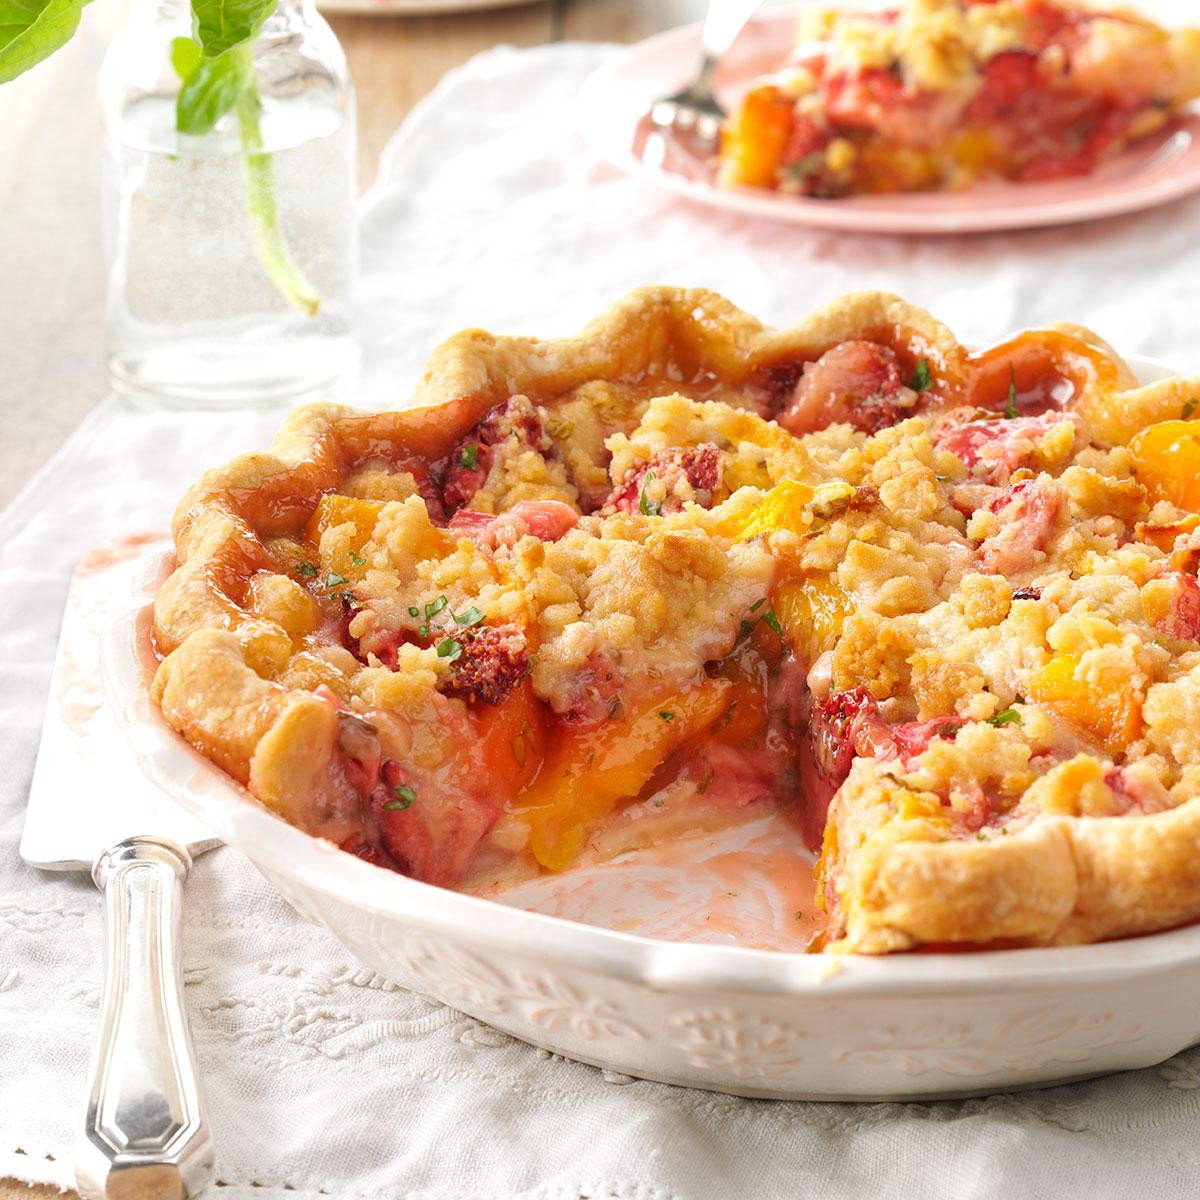 Summer Pie Recipes the 20 Best Ideas for Summer Pie Flavors